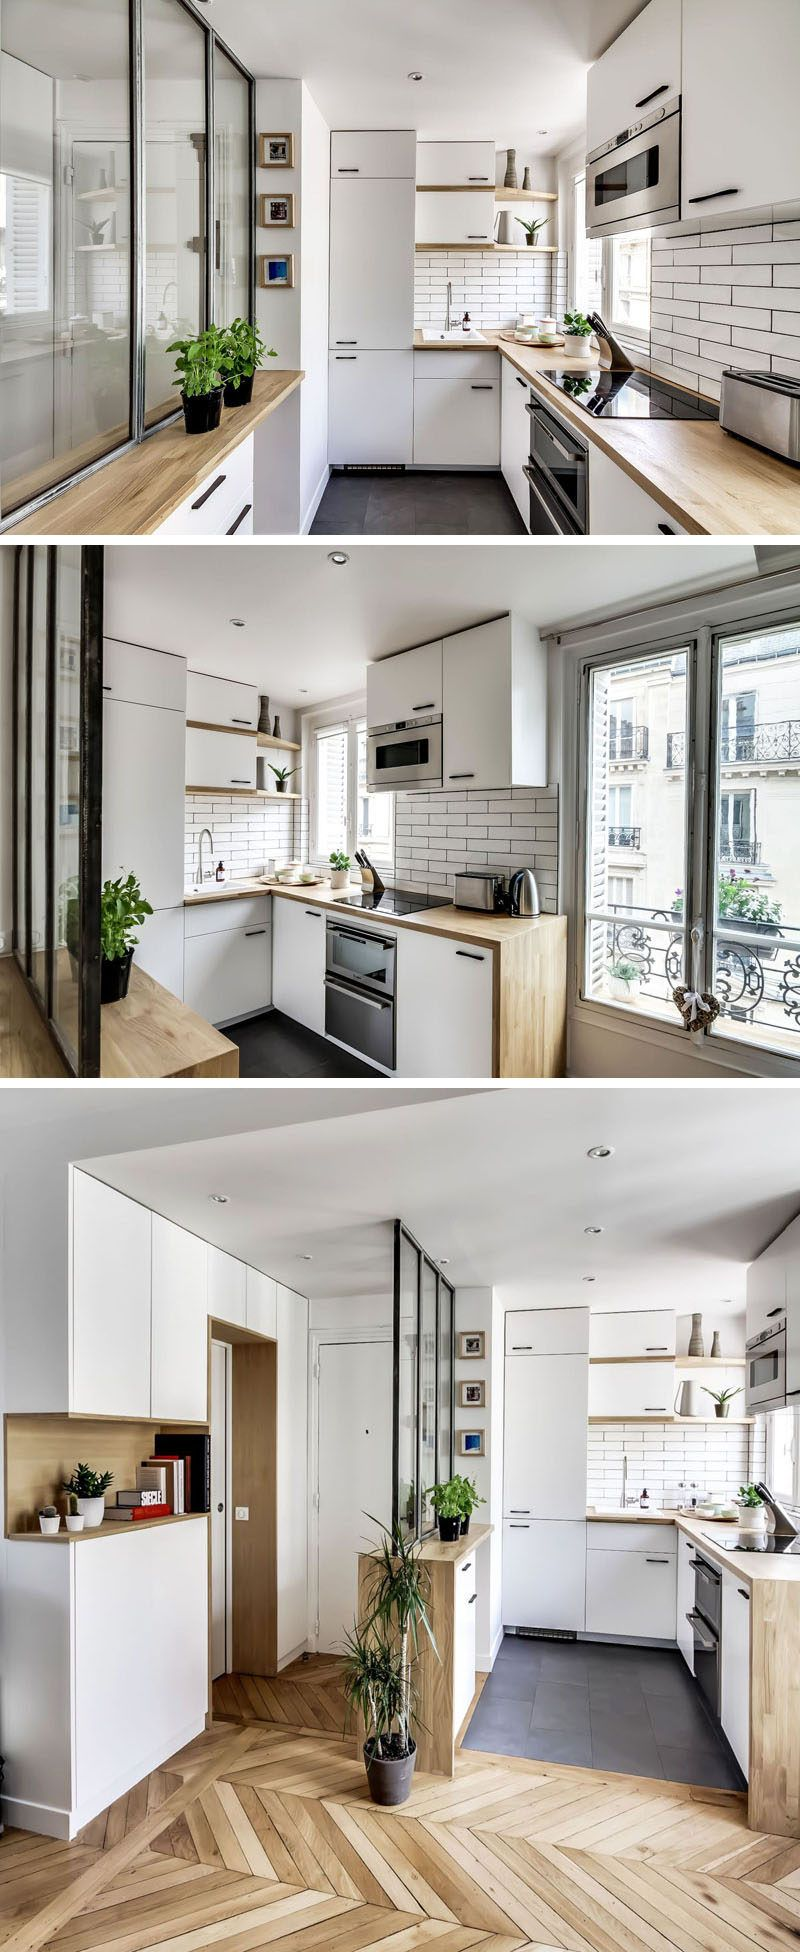 Kitchen Design Ideas - 14 Kitchens That Make The Most Of A Small ...